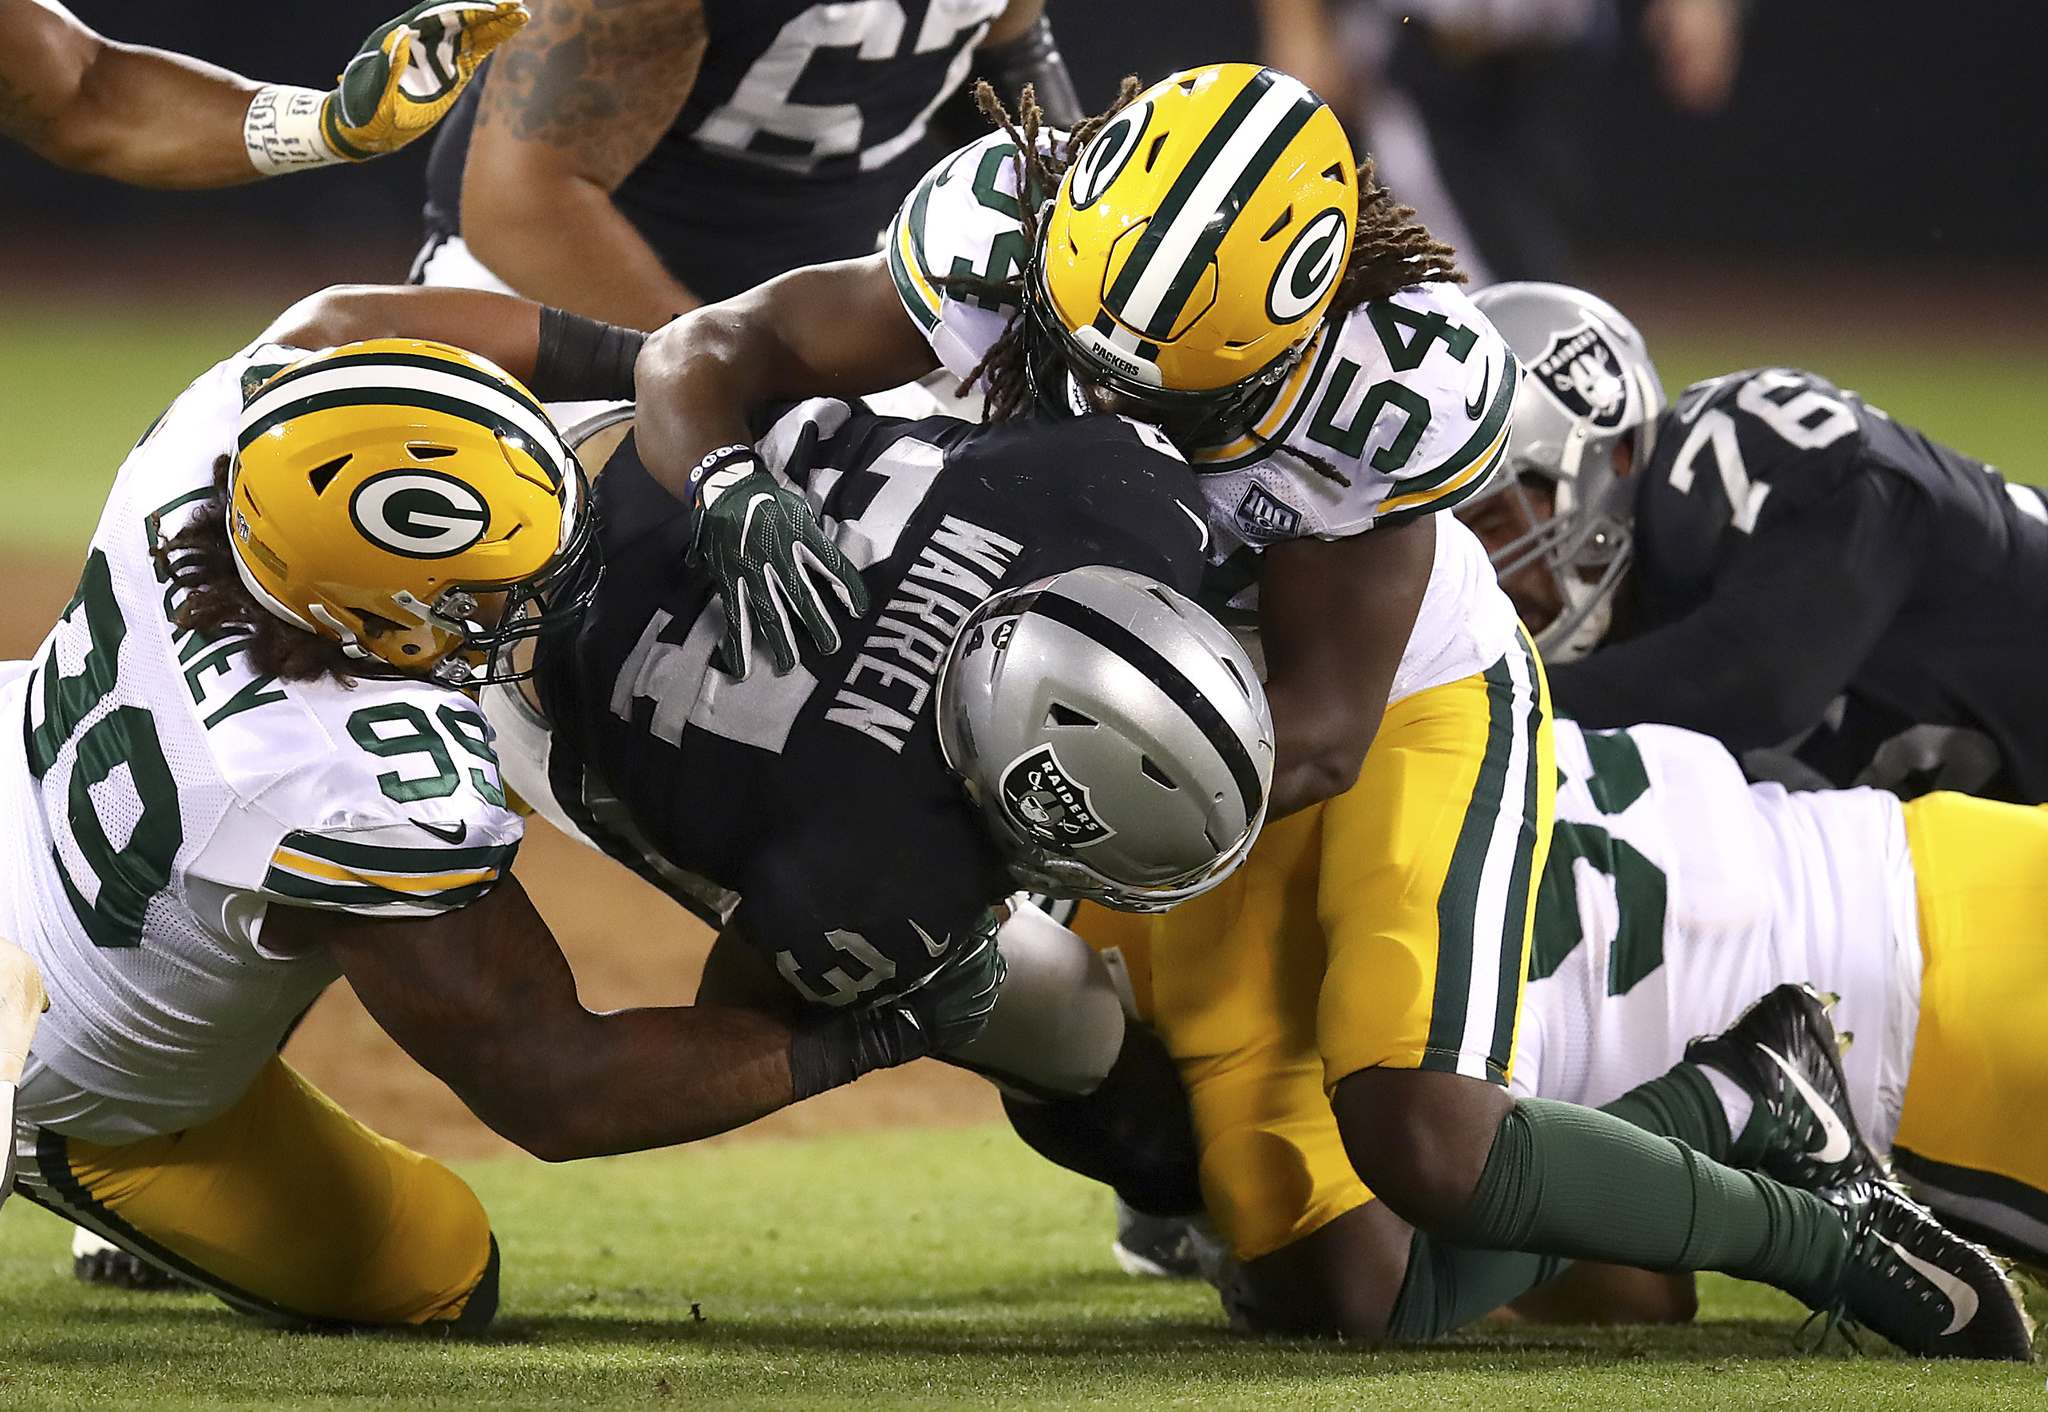 Oakland Raiders running back Chris Warren III, center, is tackled by Green Bay Packers defensive end James Looney (99) and linebacker James Crawford (54) during the second half of an NFL preseason football game in Oakland, Calif., Friday, Aug. 24, 2018. (AP Photo/Ben Margot)</p>